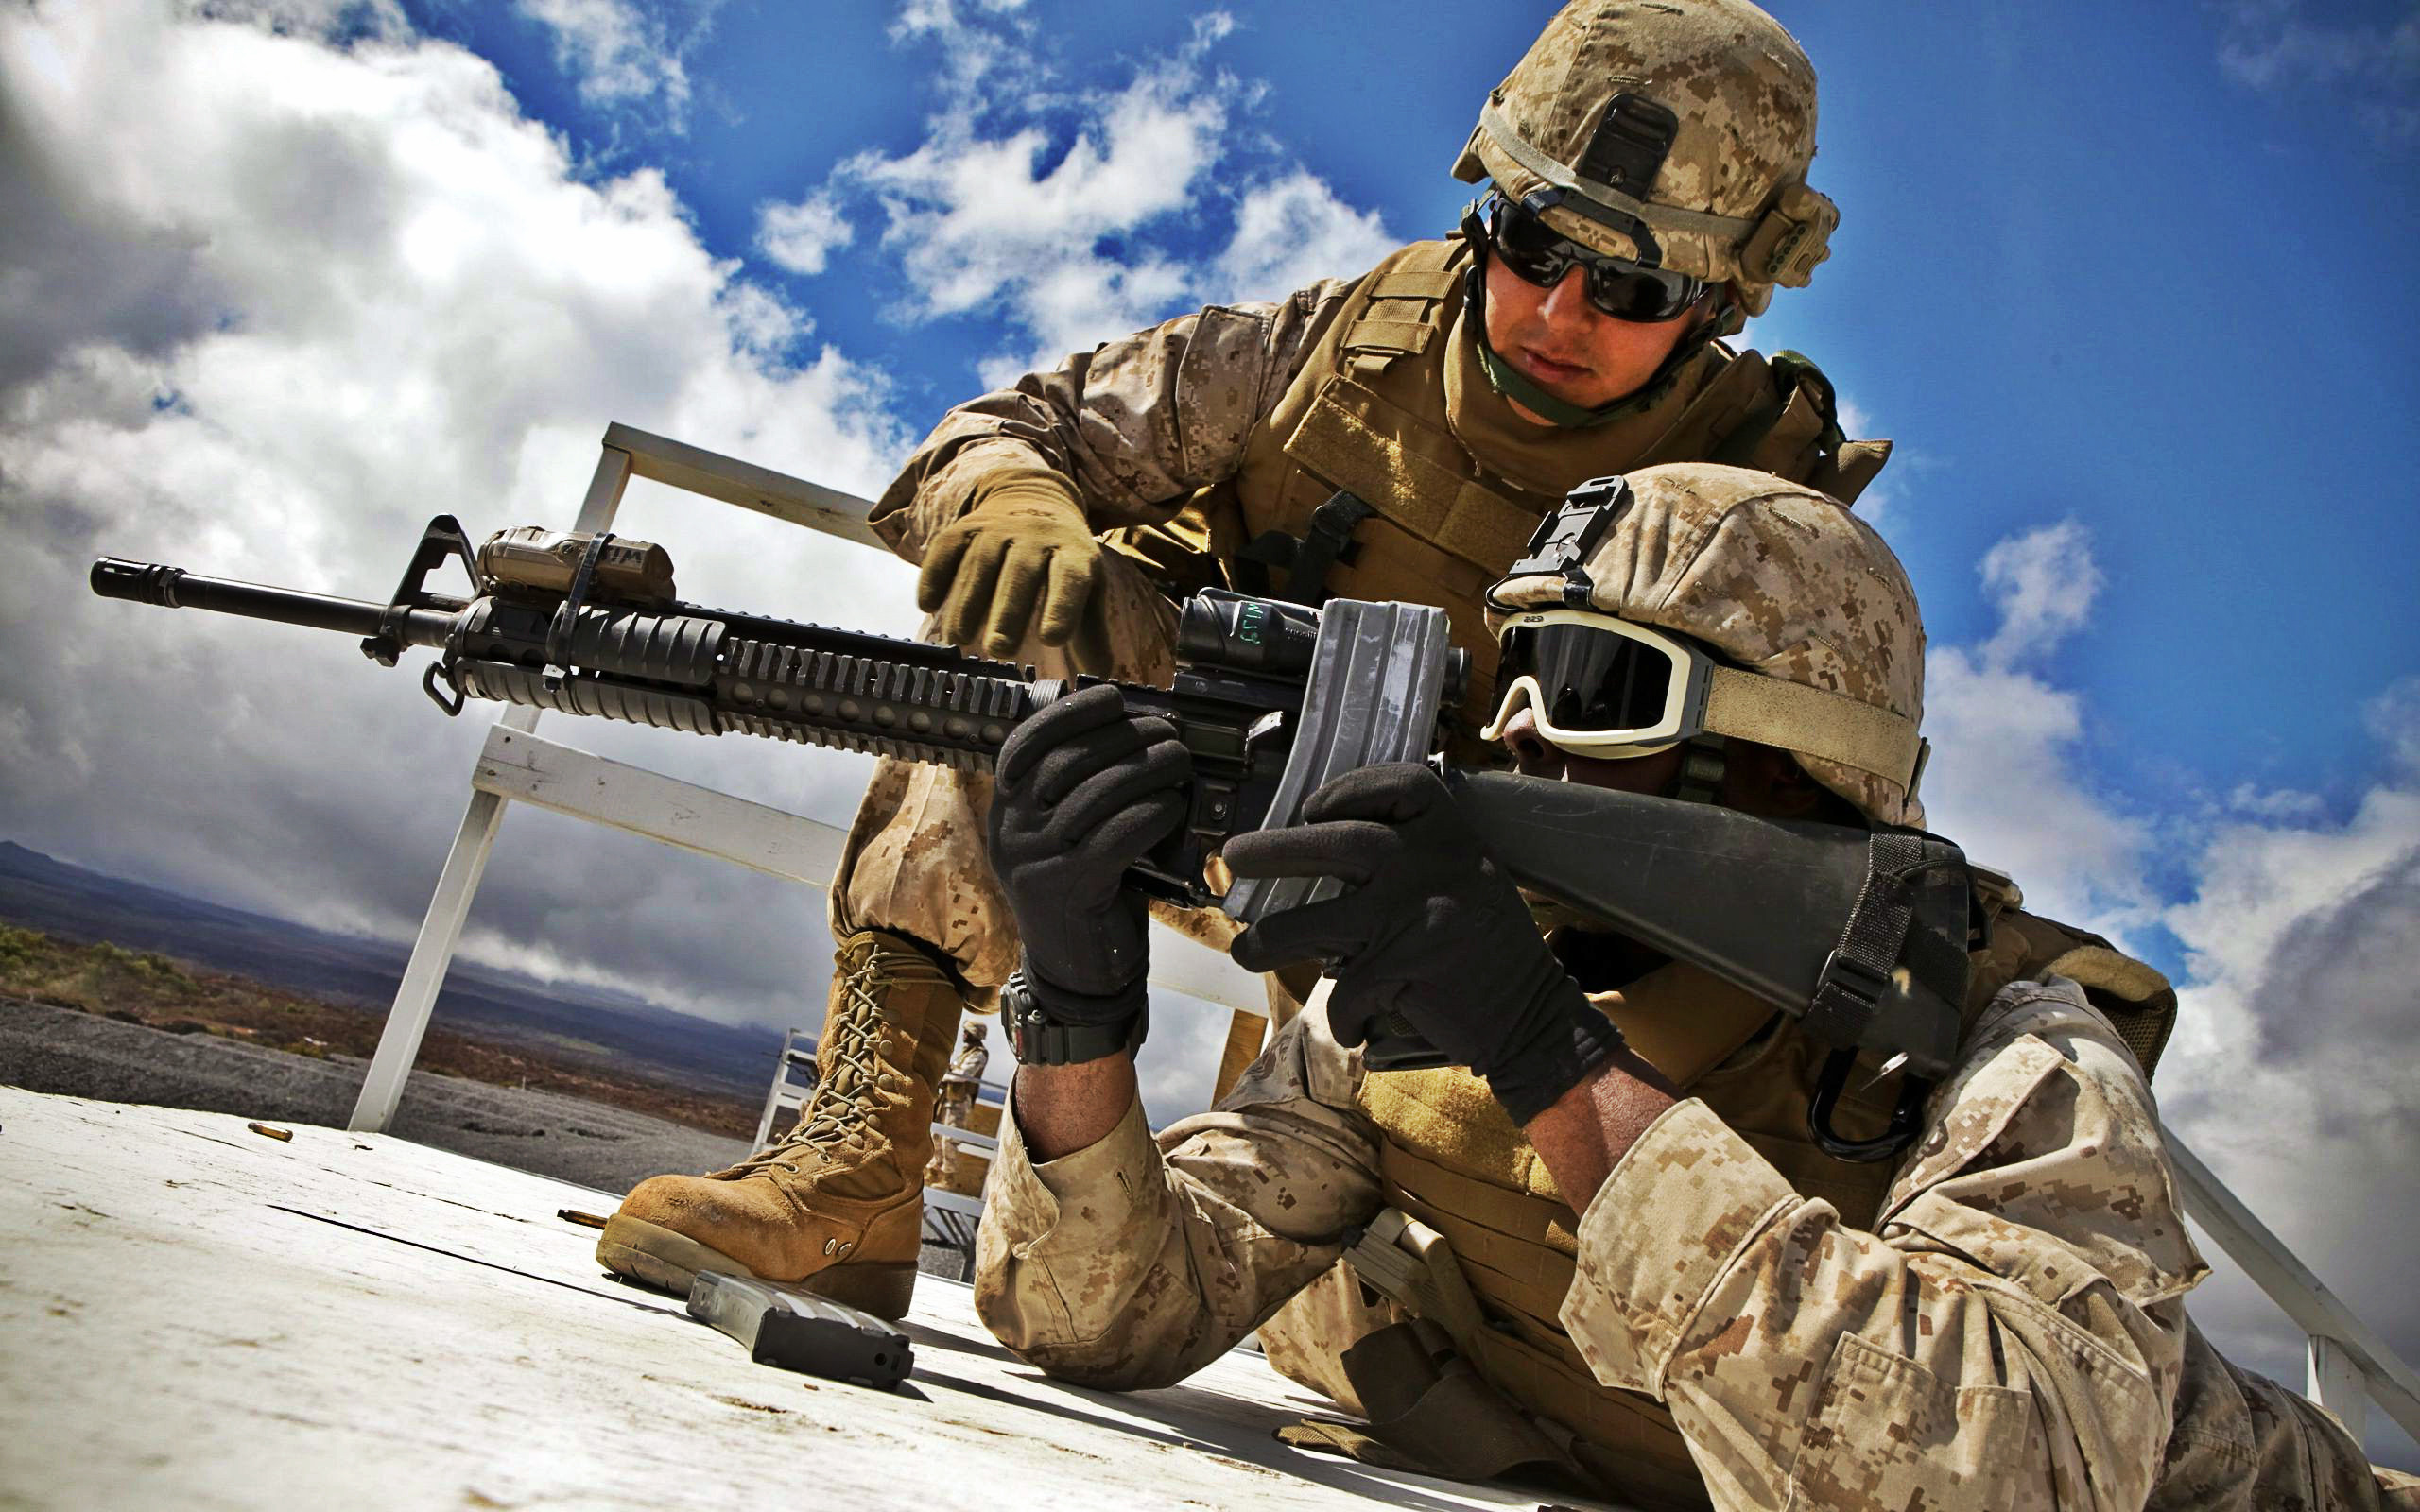 Us marine wallpapers | Hd Wallpapers